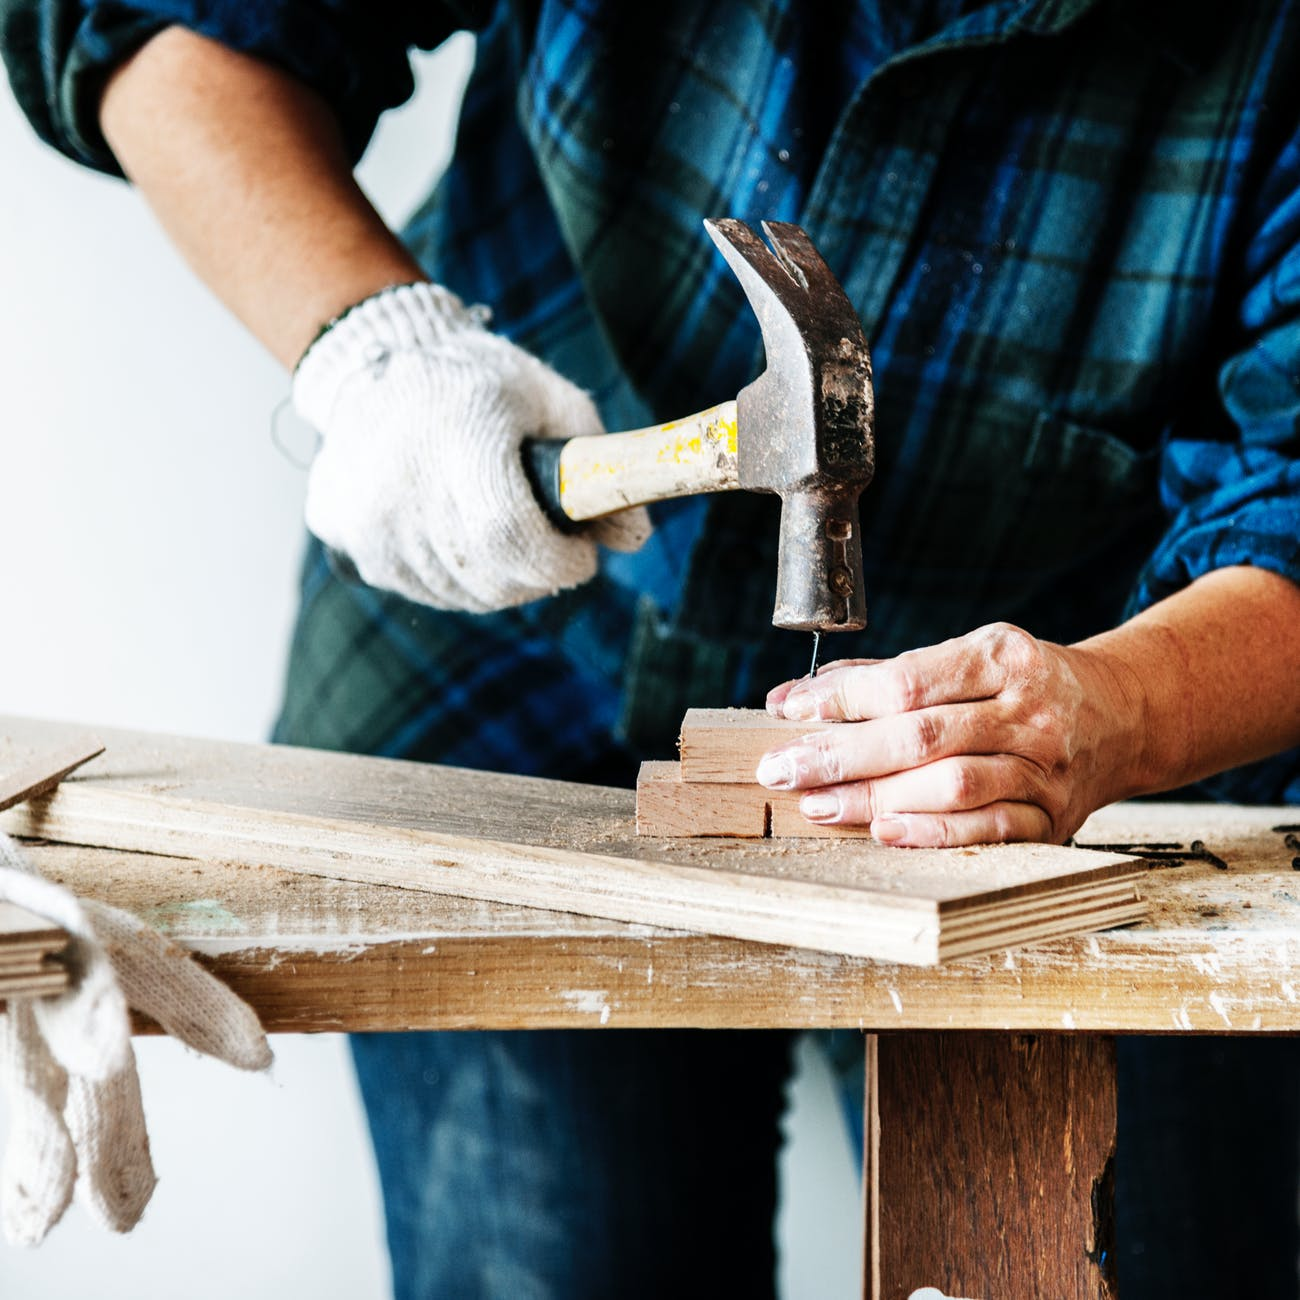 Image contains a man hammering a nail in wood.